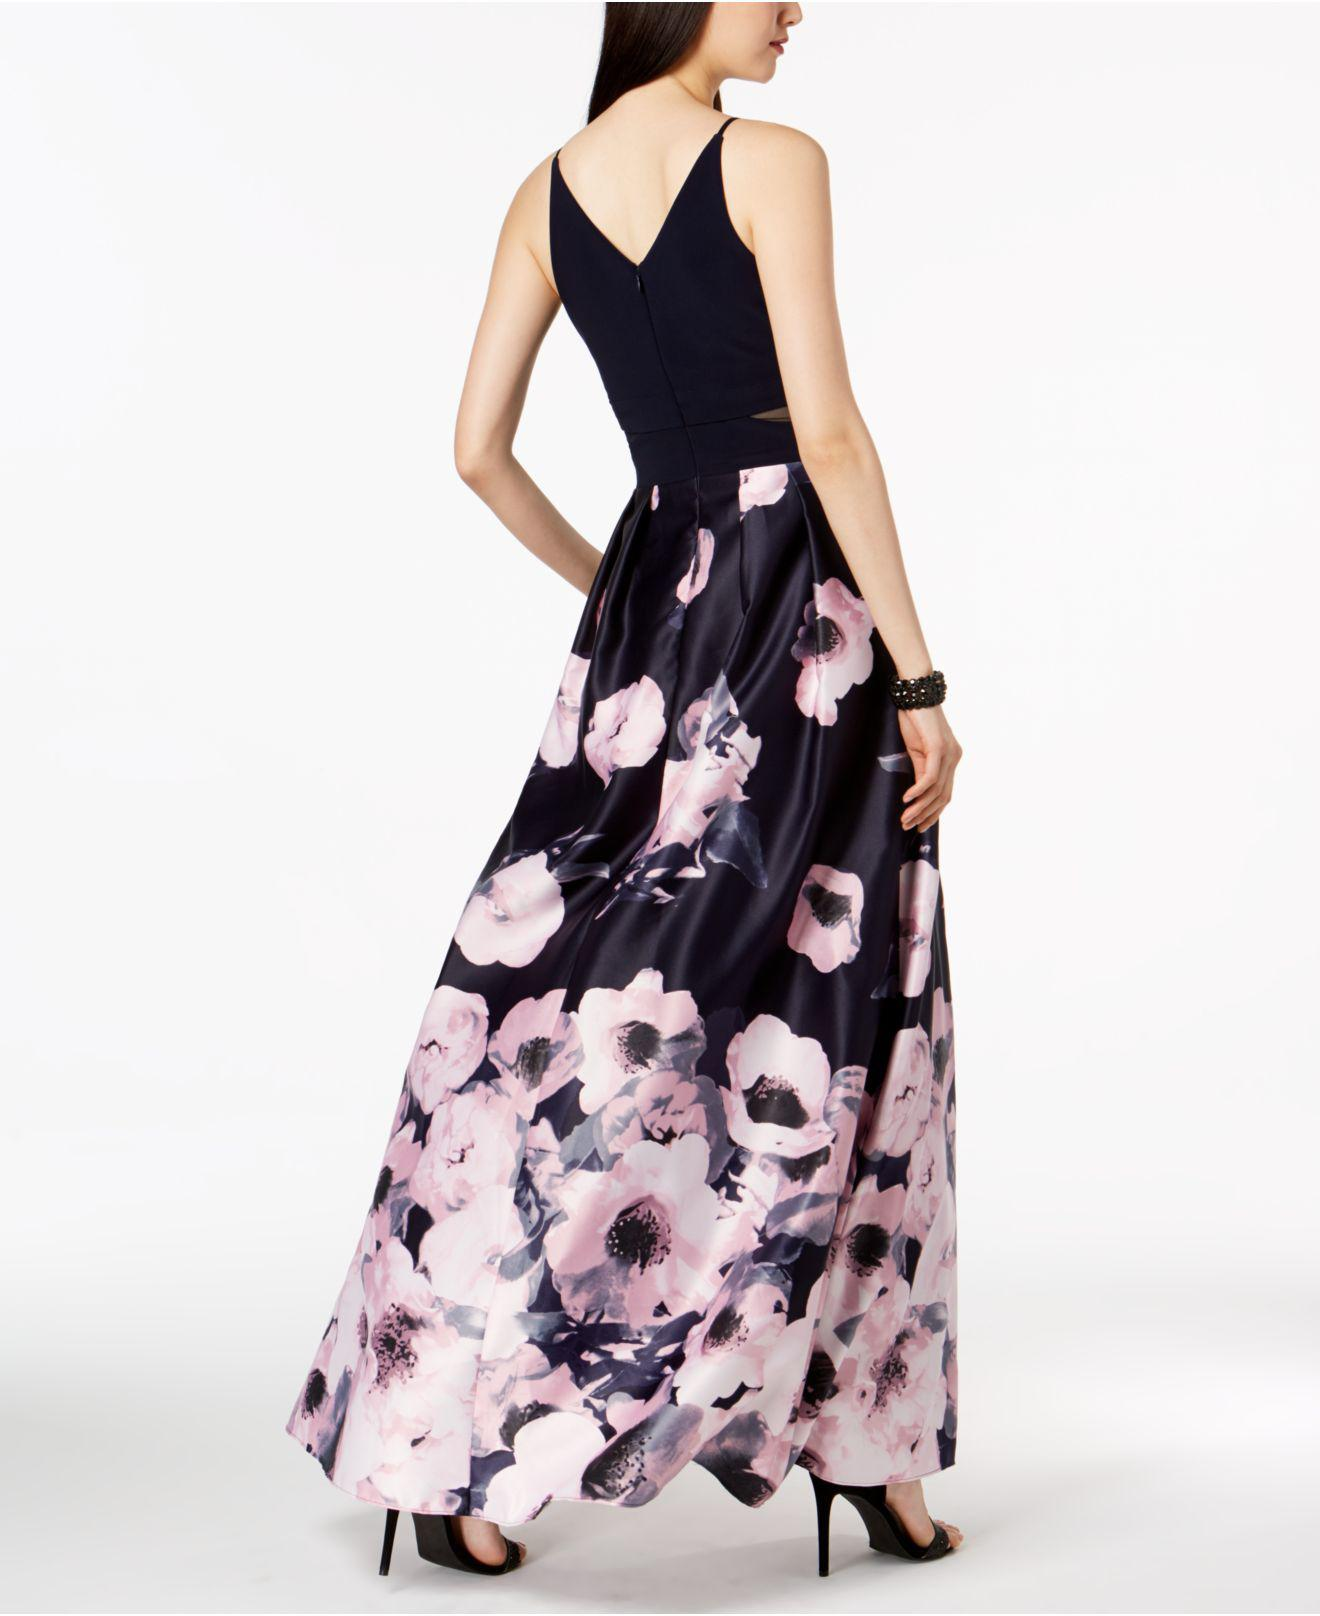 Lyst - Xscape Illusion-inset Solid & Floral-print Gown in Blue